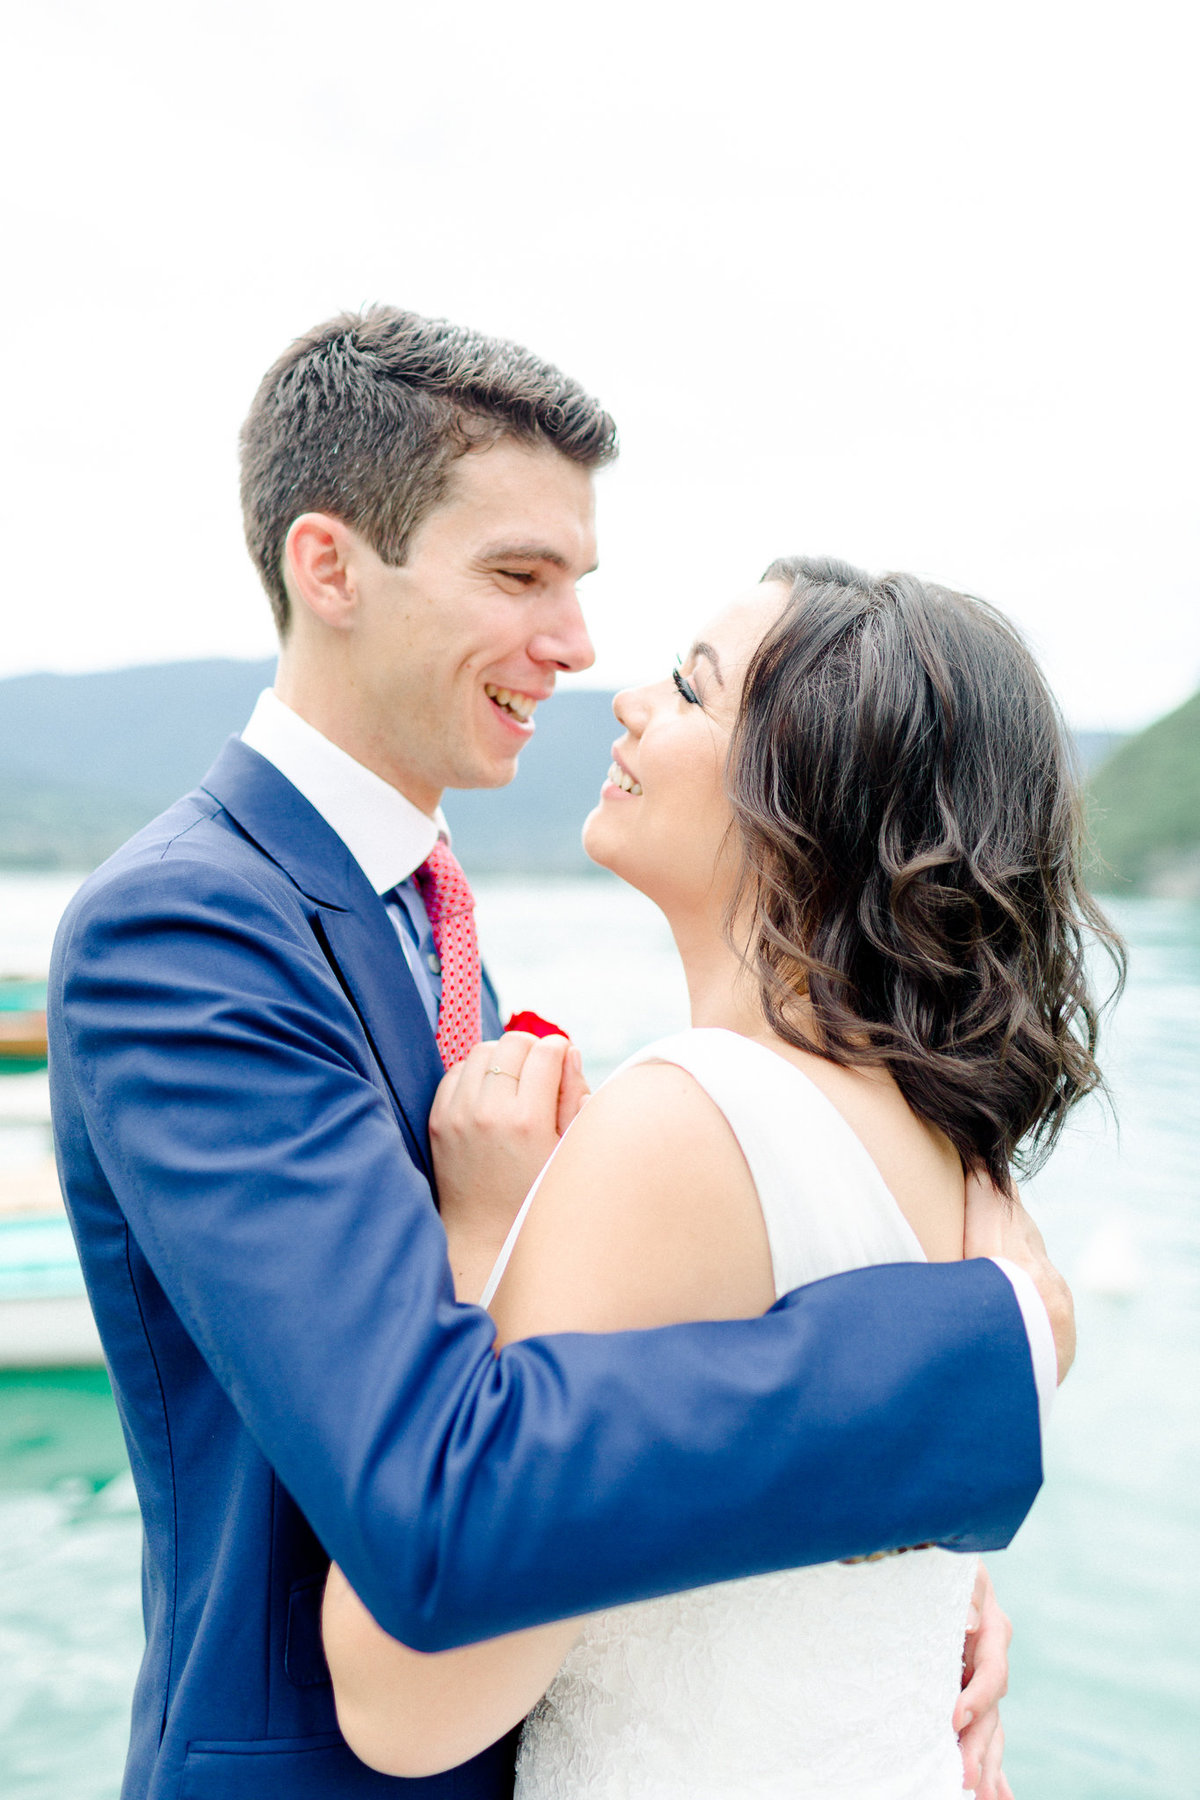 photographe-mariage-talloires-france-lisa-renault-photographie-wedding-destination-photographer-54